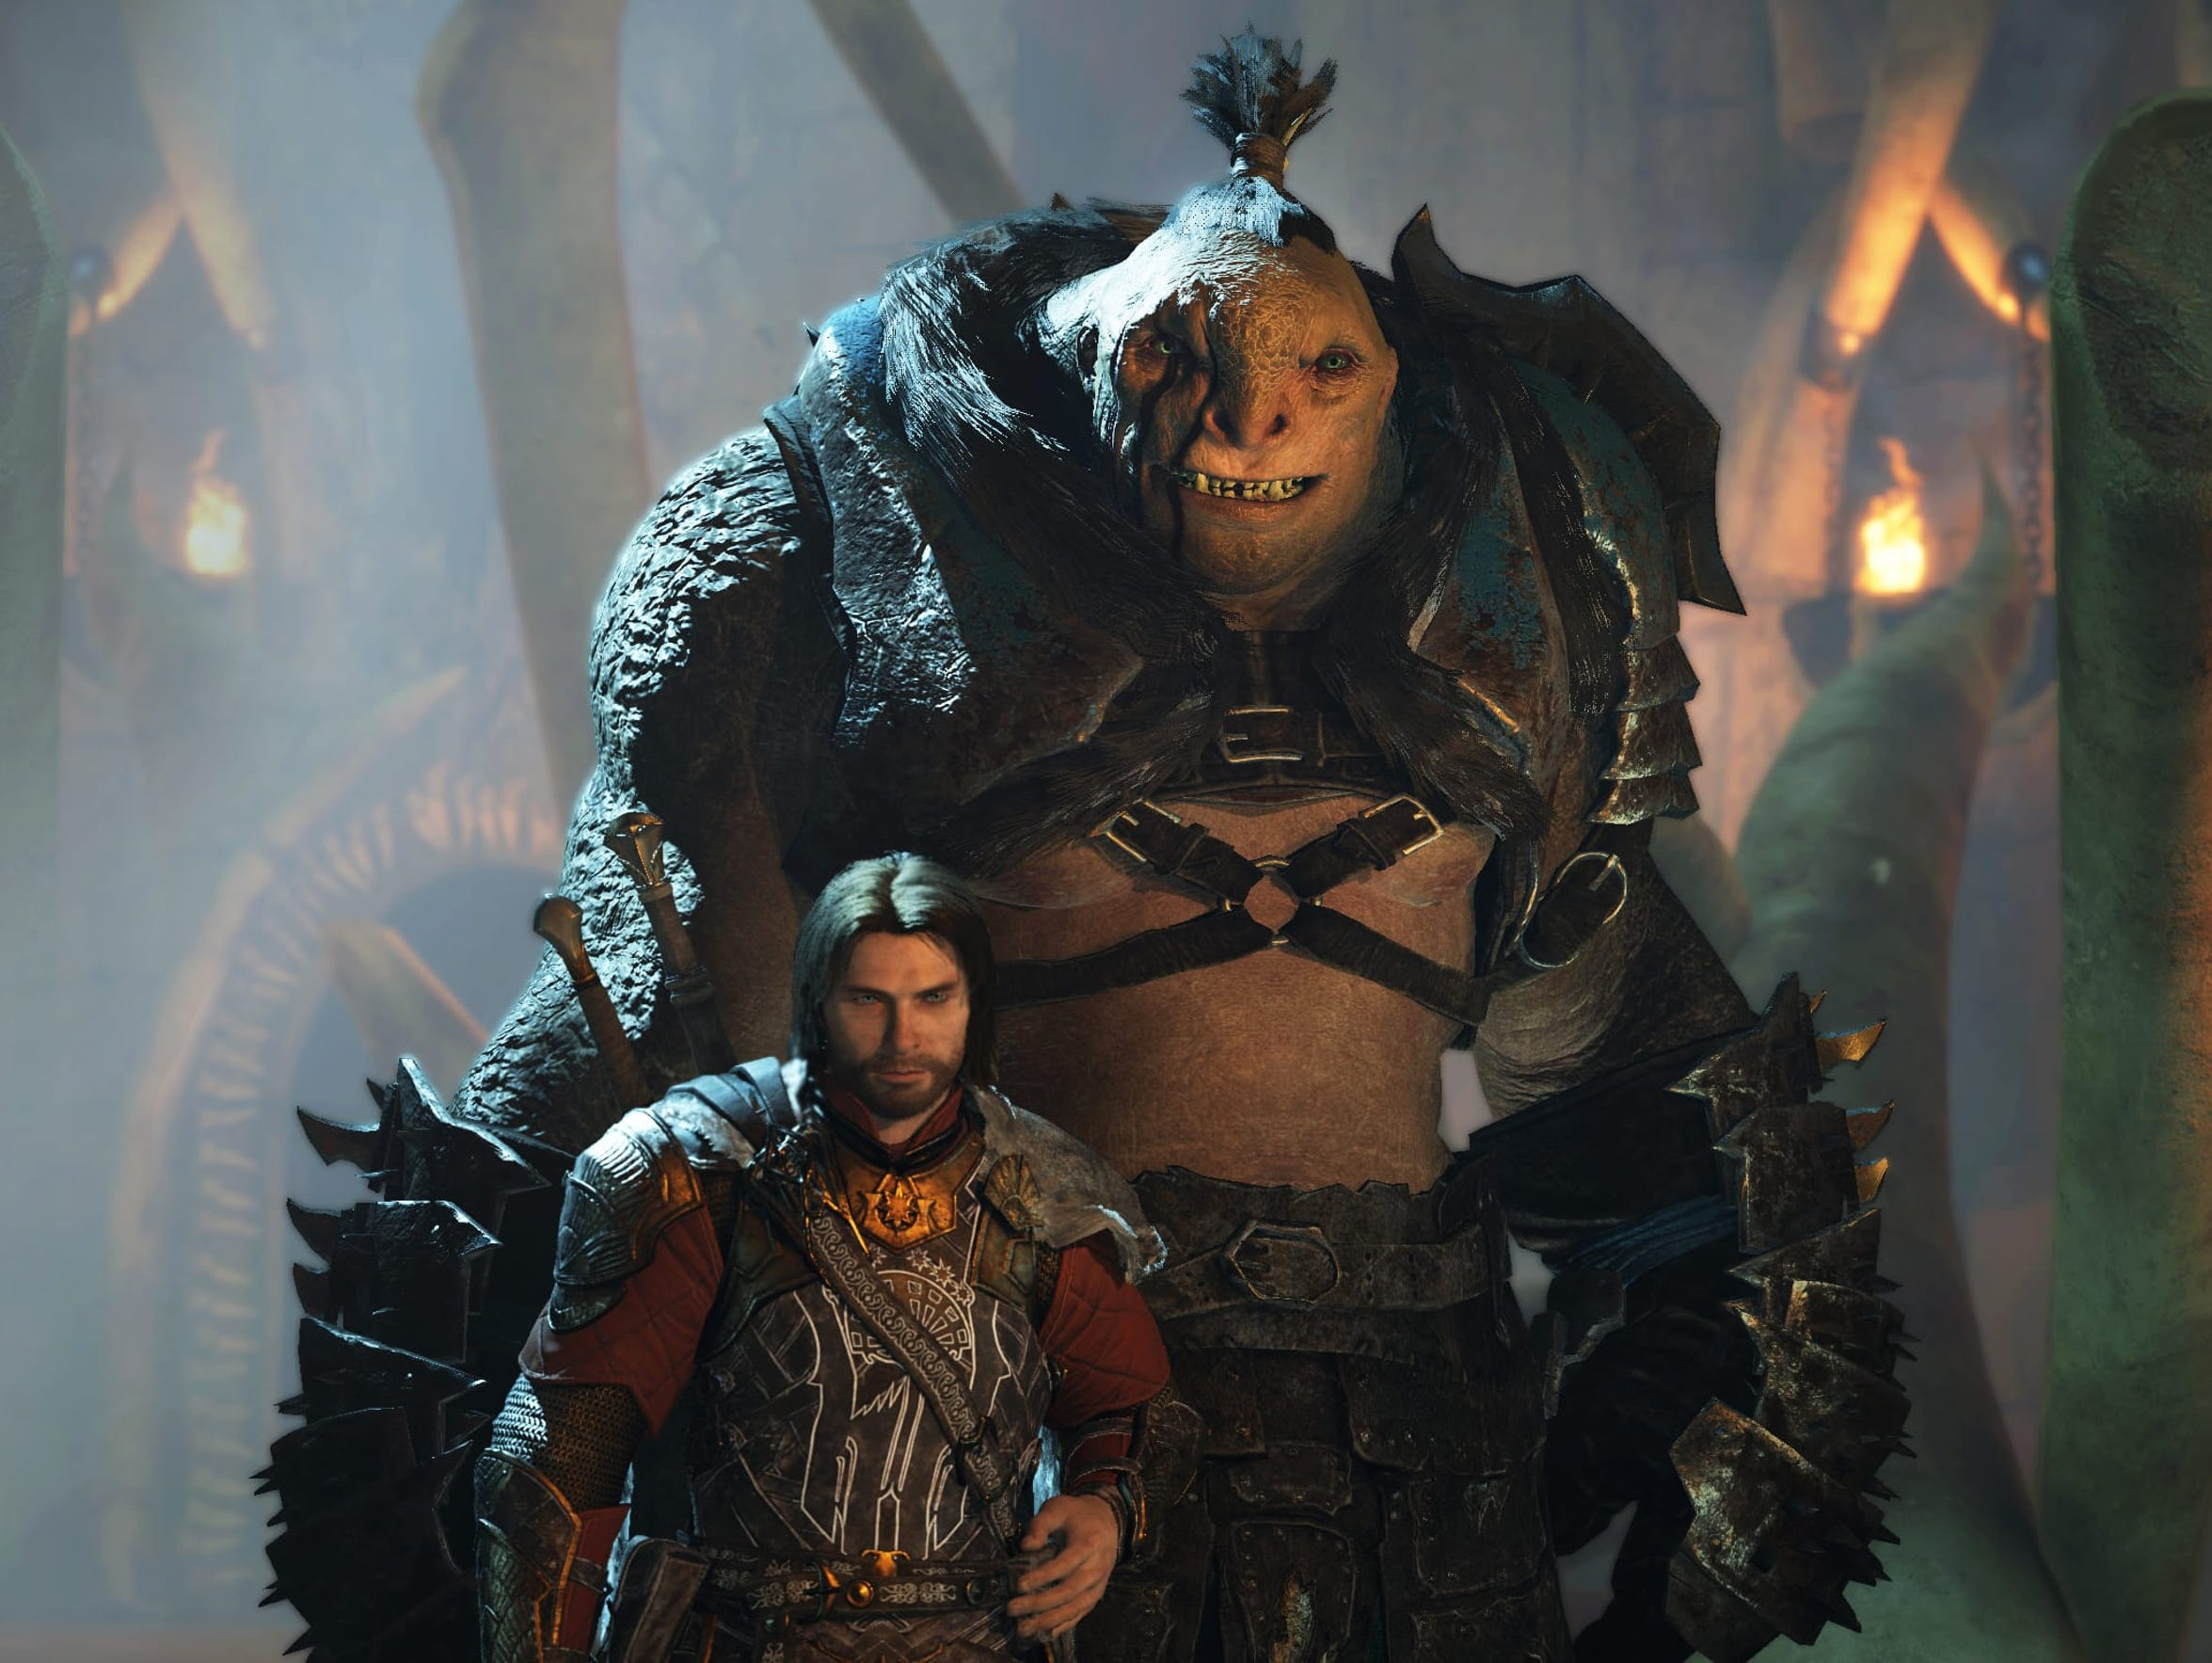 Middle-earth: Shadow of War for PC, PS4 and Xbox One.